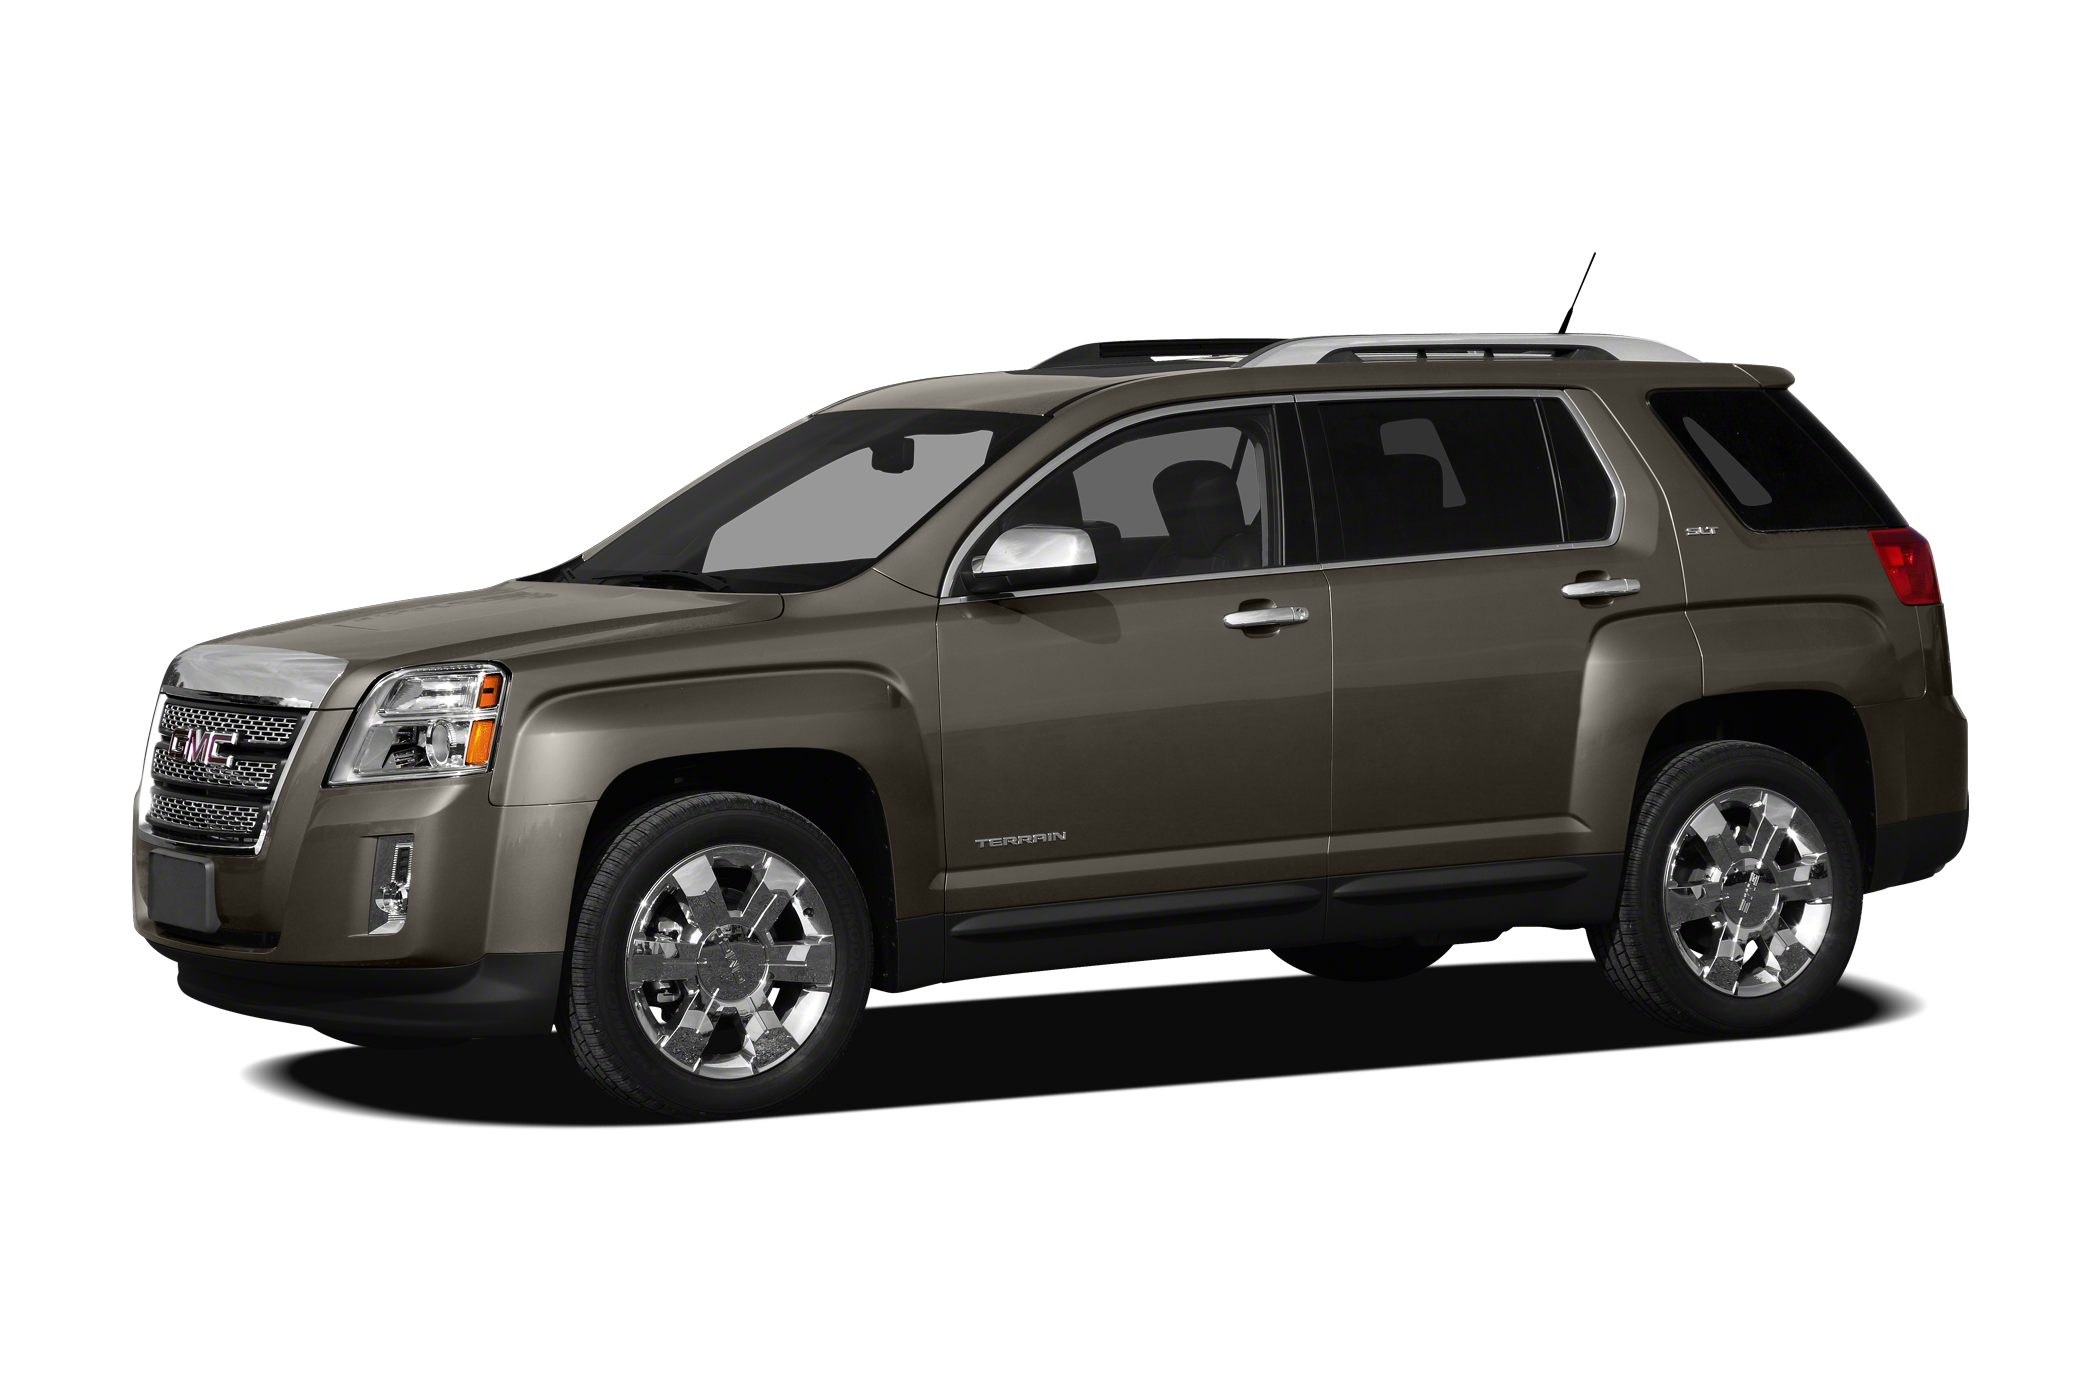 2012 GMC Terrain SLT-2 SUV for sale in Effingham for $20,995 with 78,179 miles